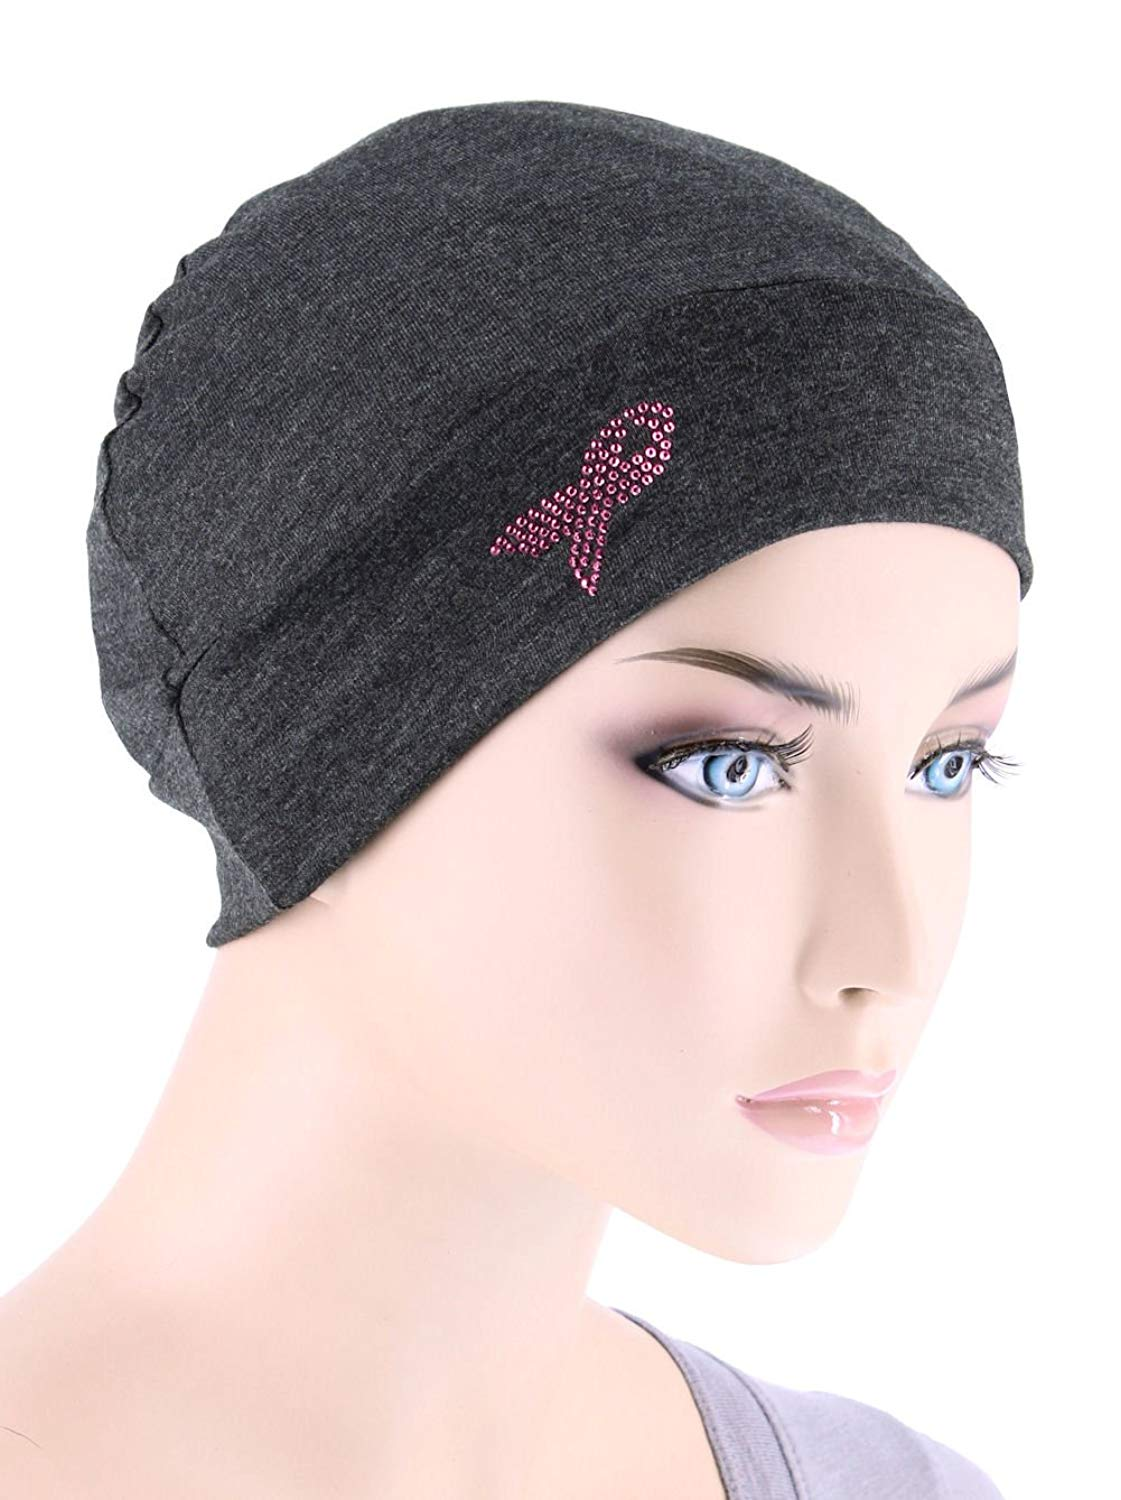 Breast Cancer Awareness Soft Comfy Chemo Cap Hat with Pink Ribbon Metallic Rhinestud